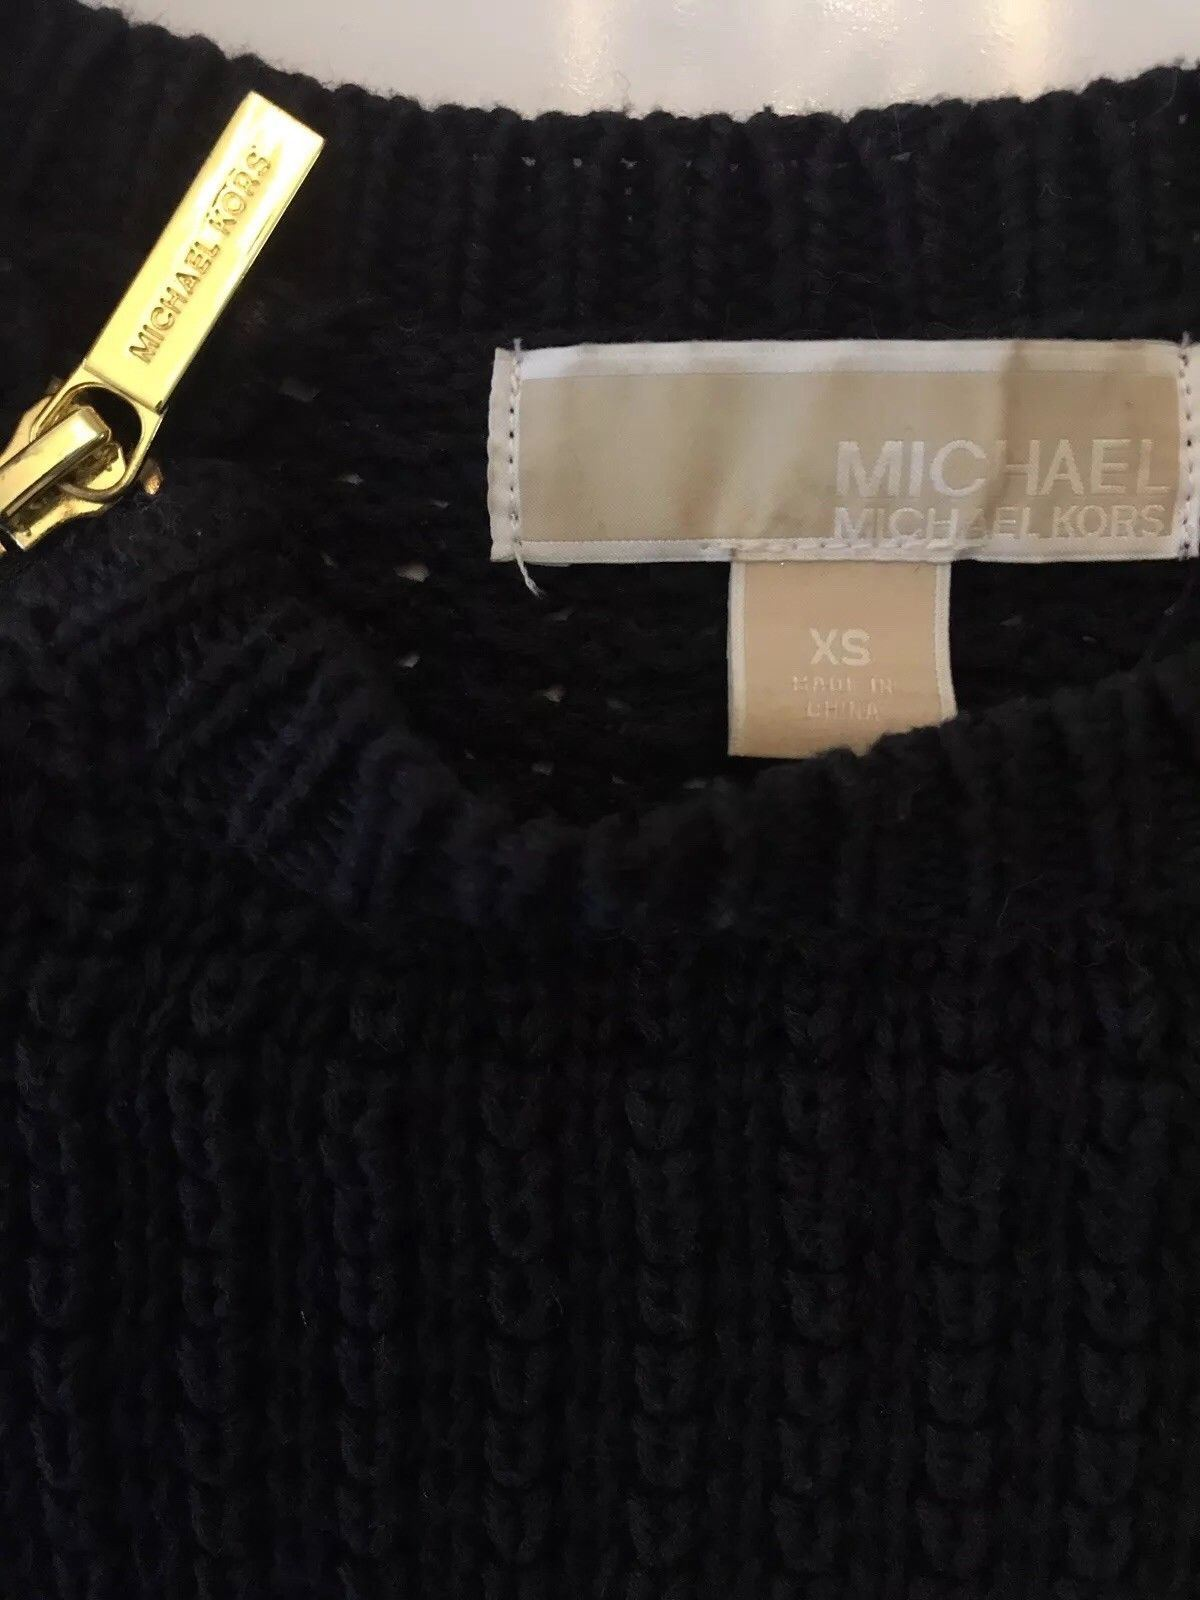 Michael Kors Women's Long Sleeve Black Knit Sweater Size XS